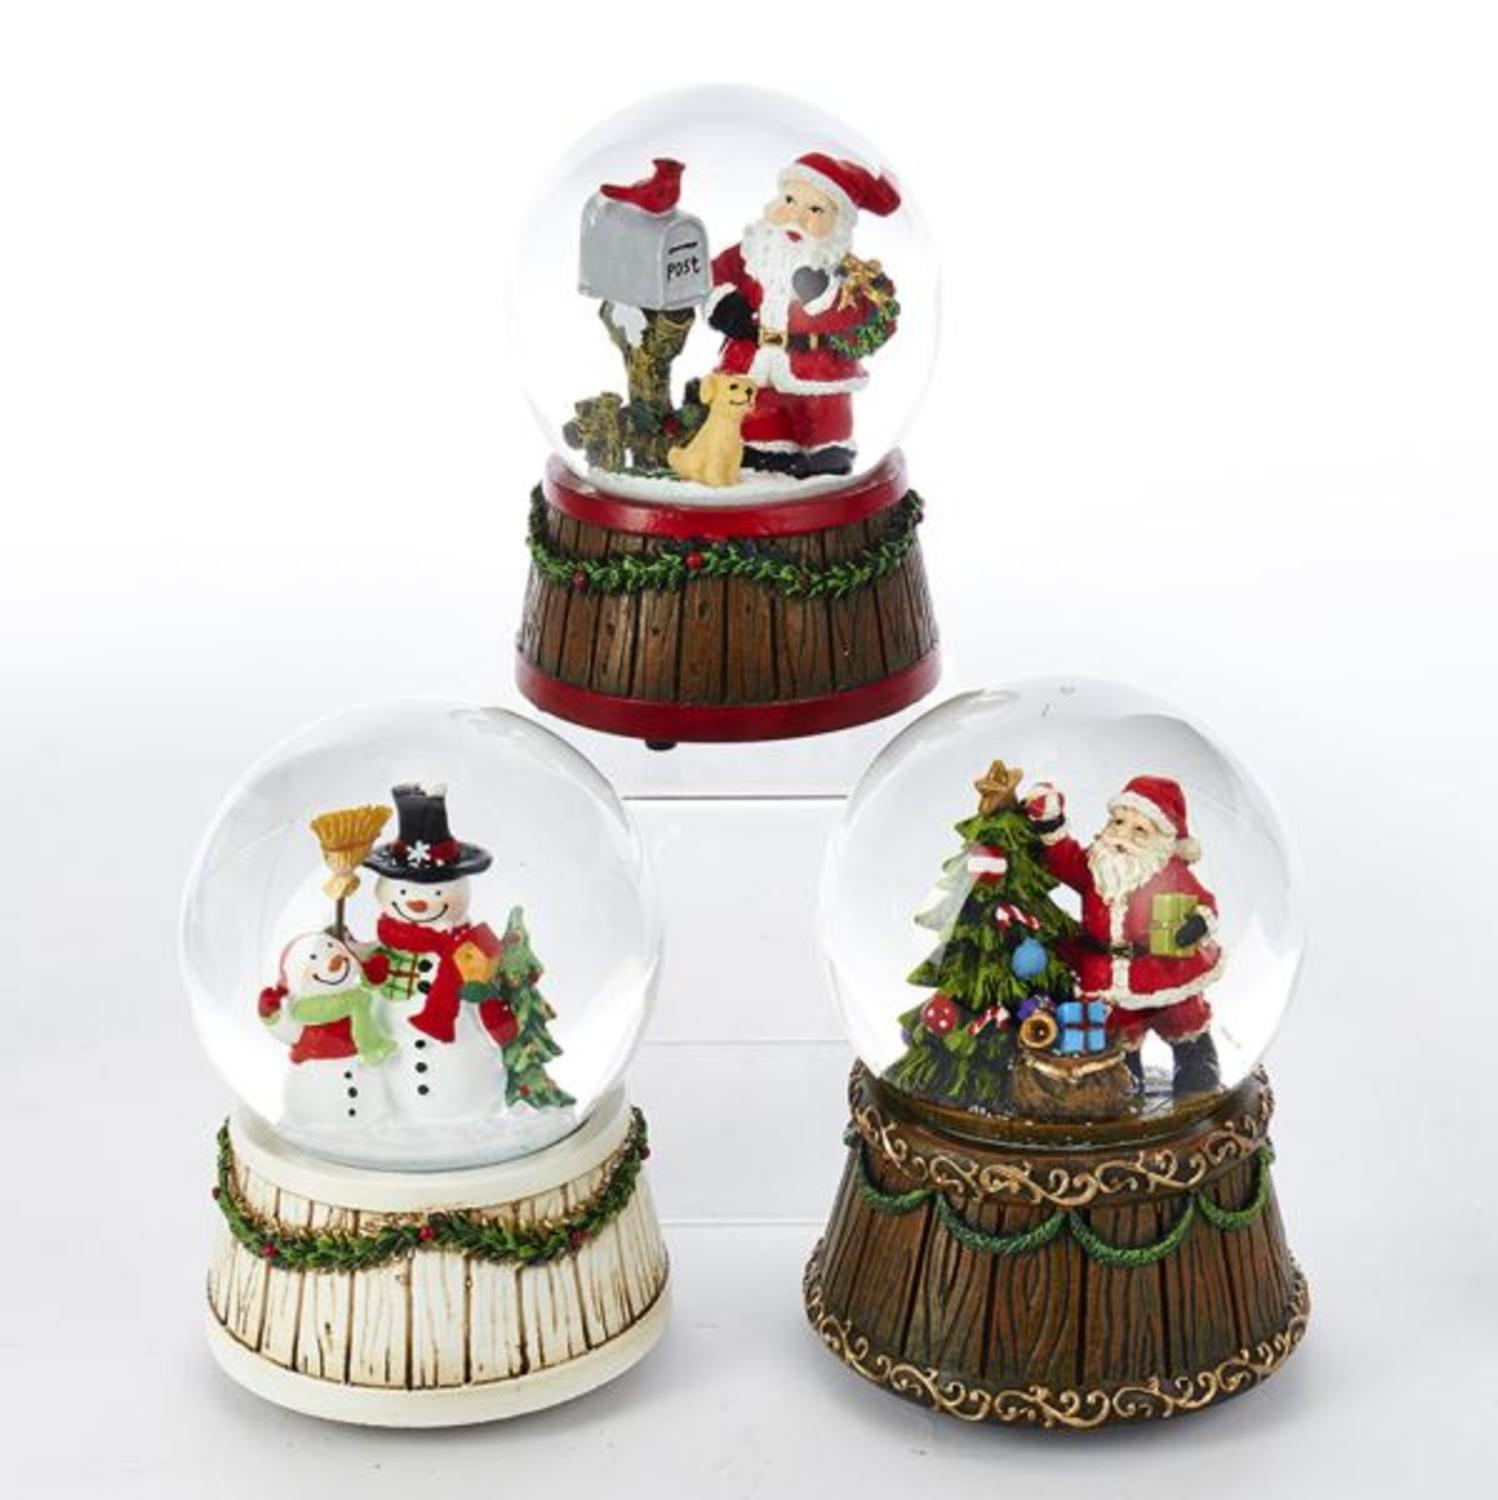 Club Pack of 12 Vibrantly Colored Musical Wind-up Santa Claus and Snowman Water Globes 3.93""